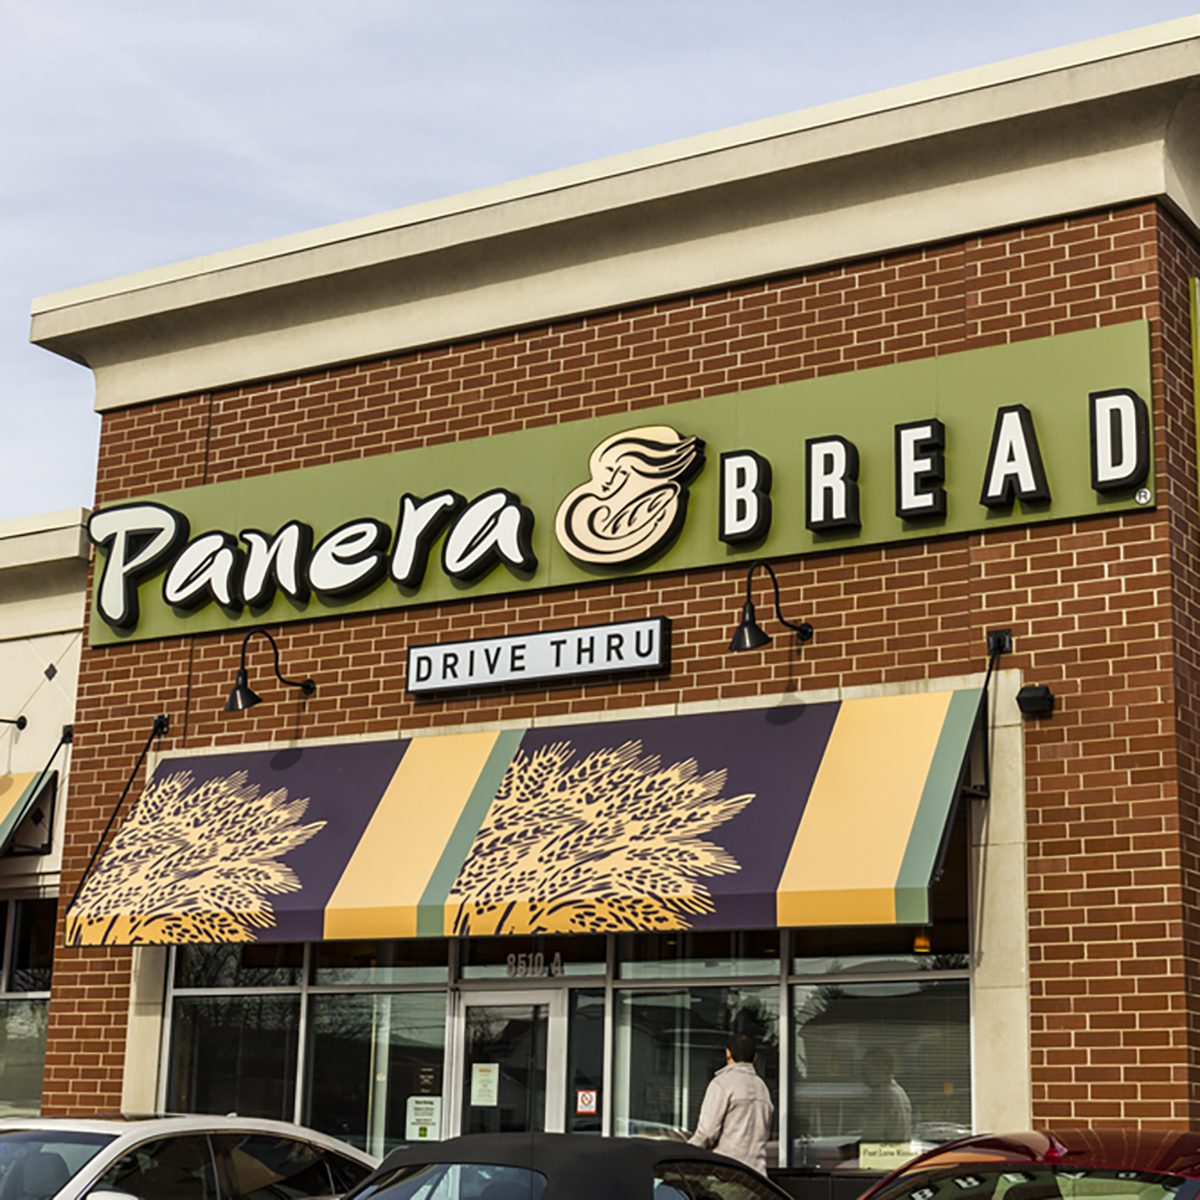 Panera Bread Retail Location. Panera is a Chain of Fast Casual Restaurants